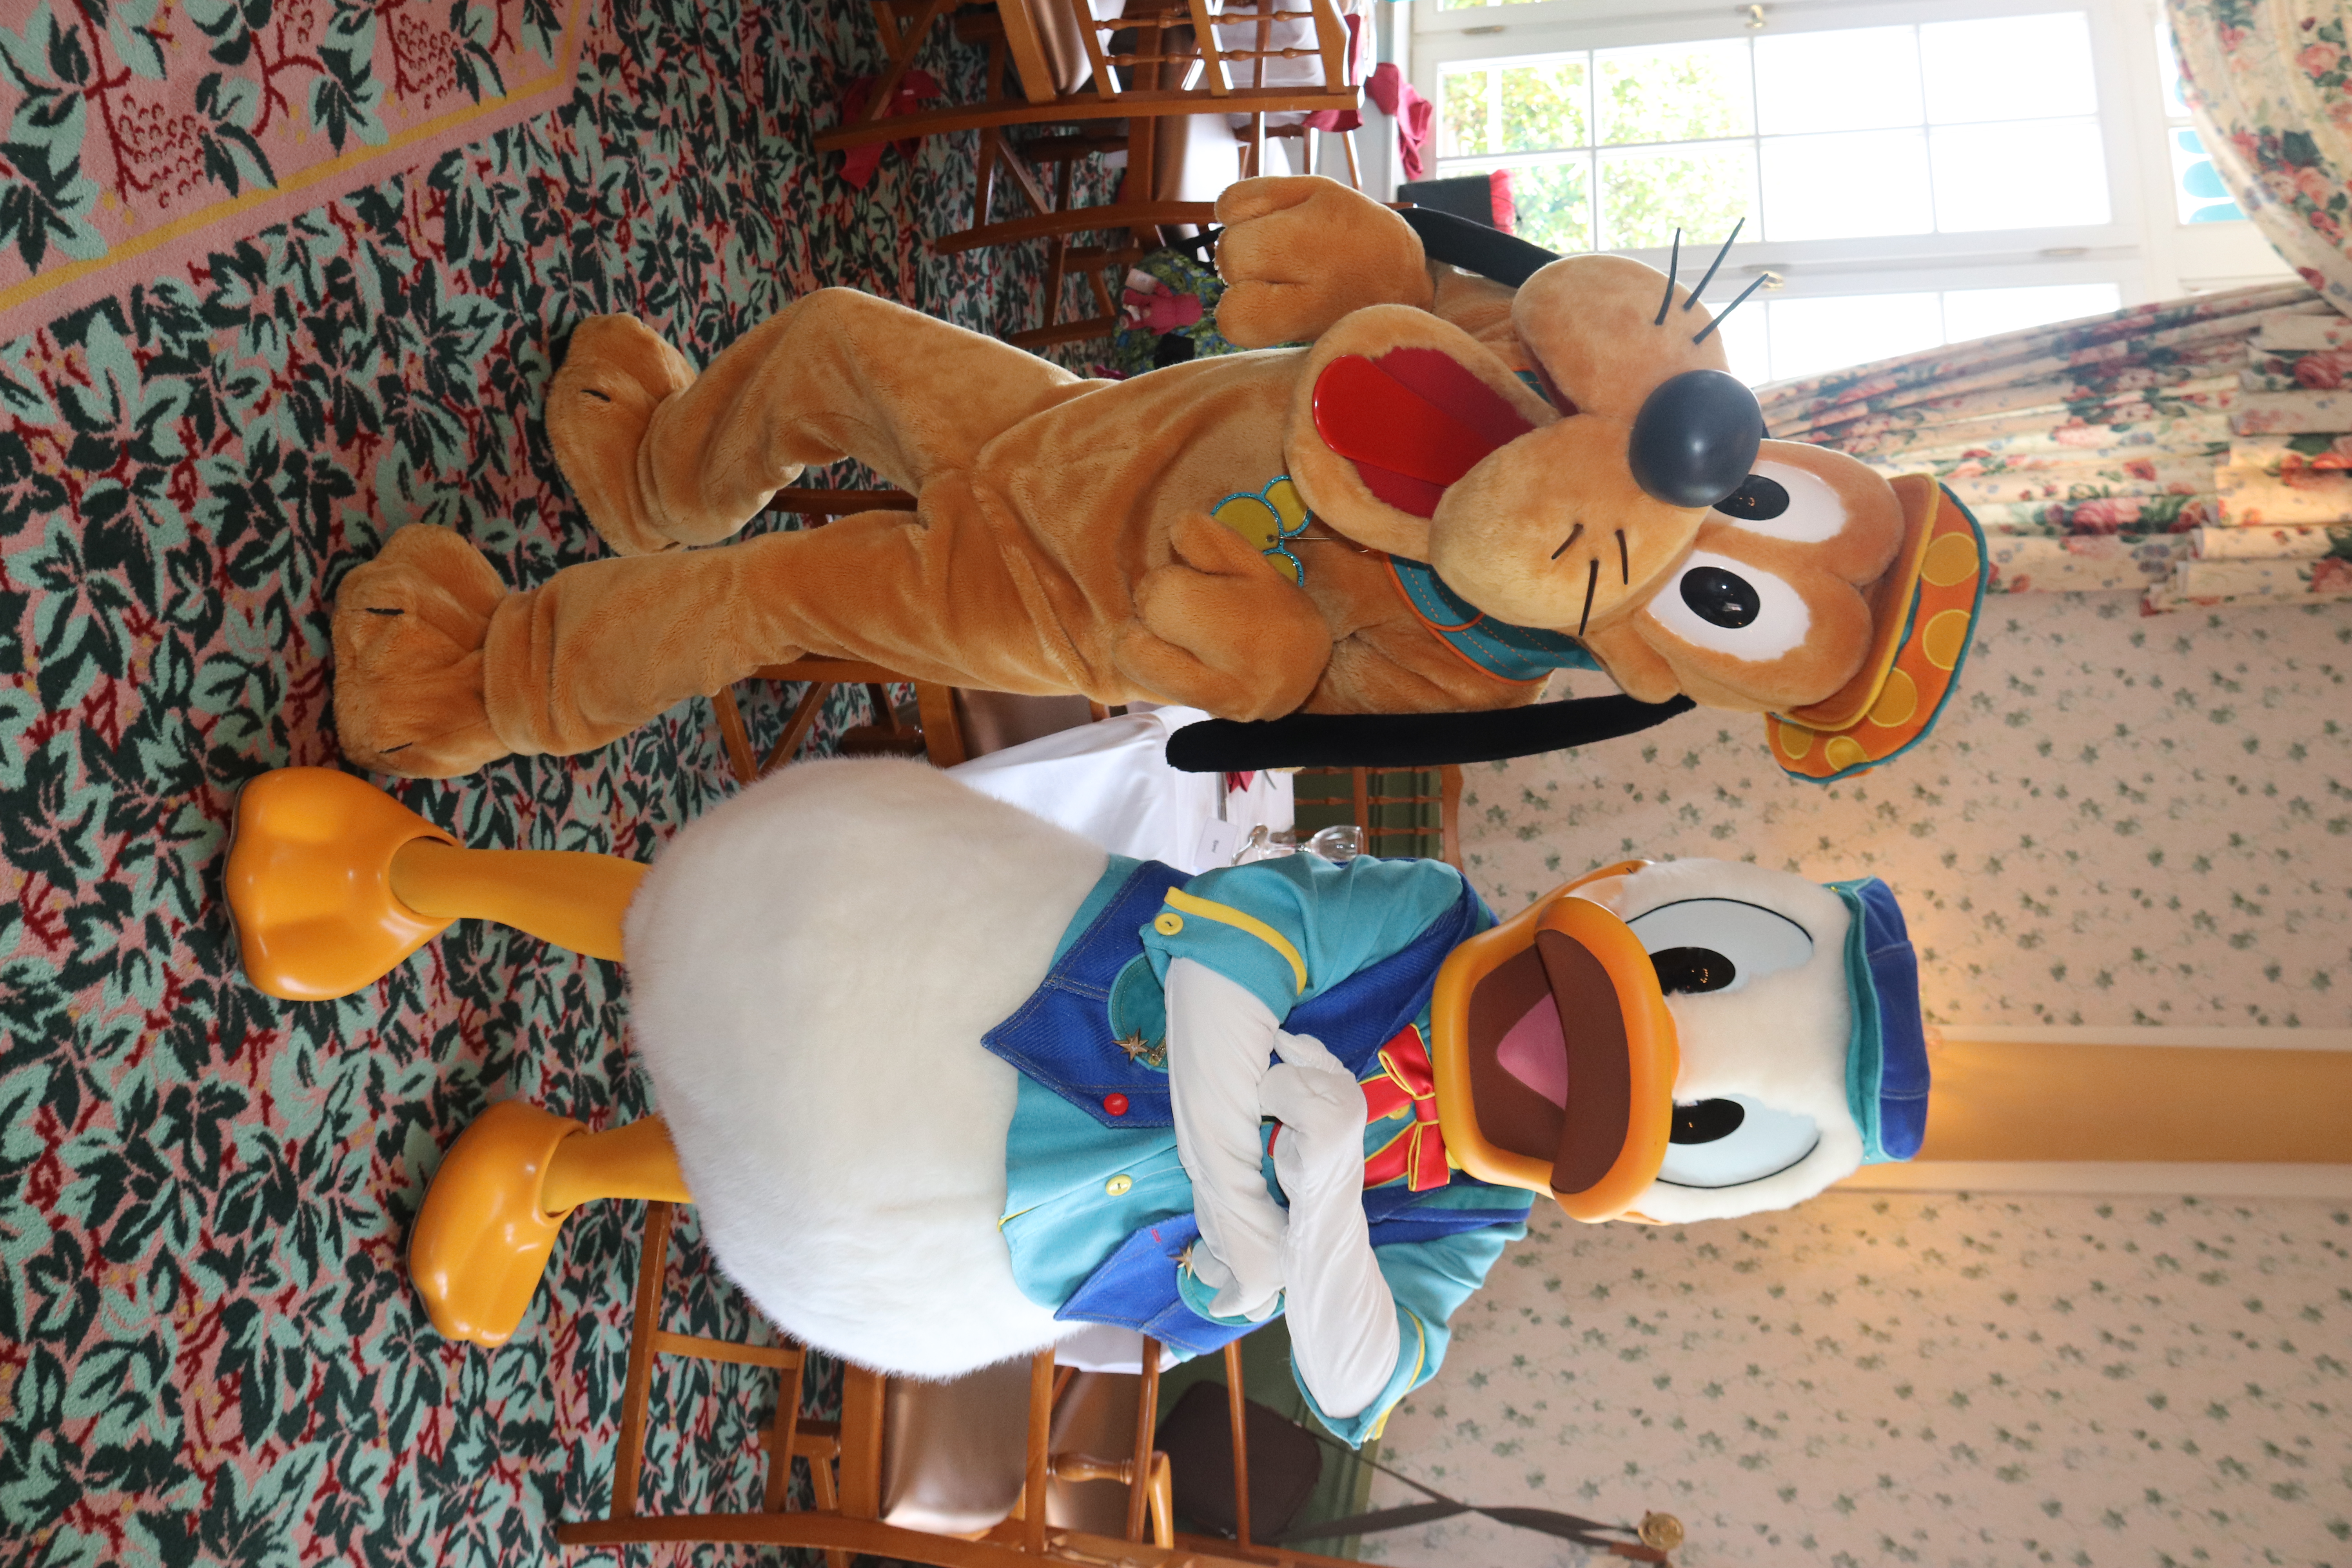 Pluto and Donald